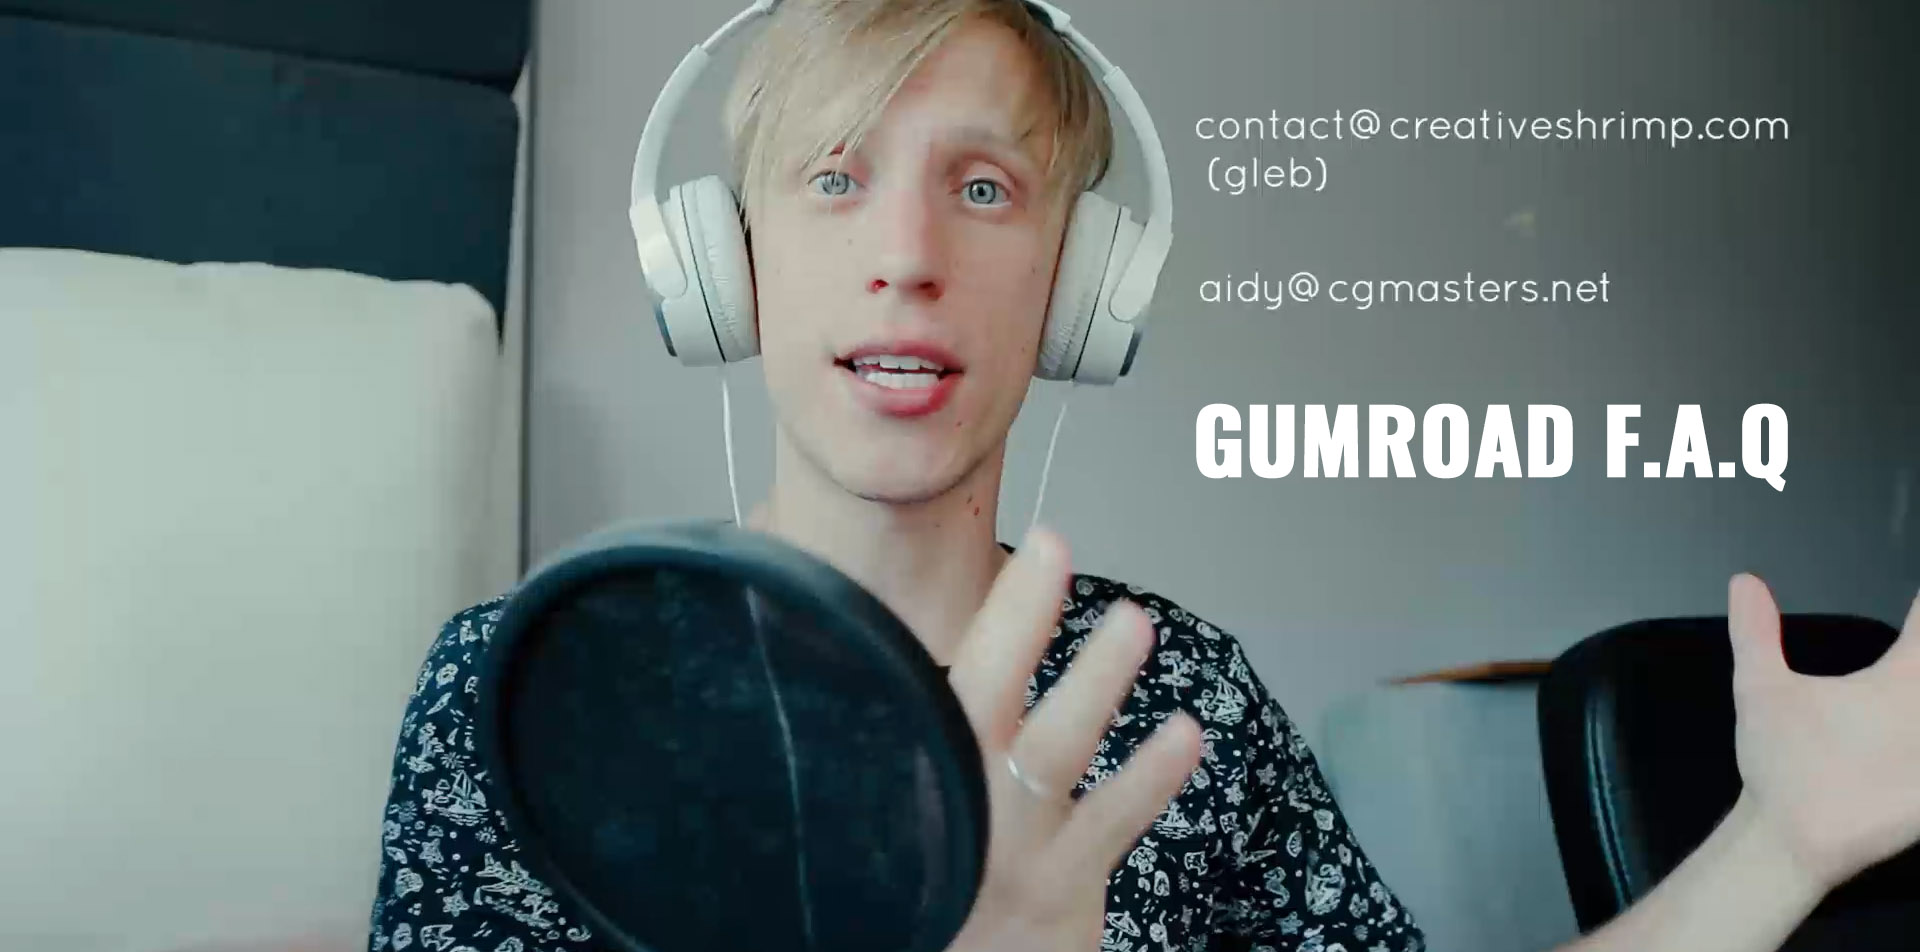 6 Gumroad Problems and How to Solve Them • Creative Shrimp